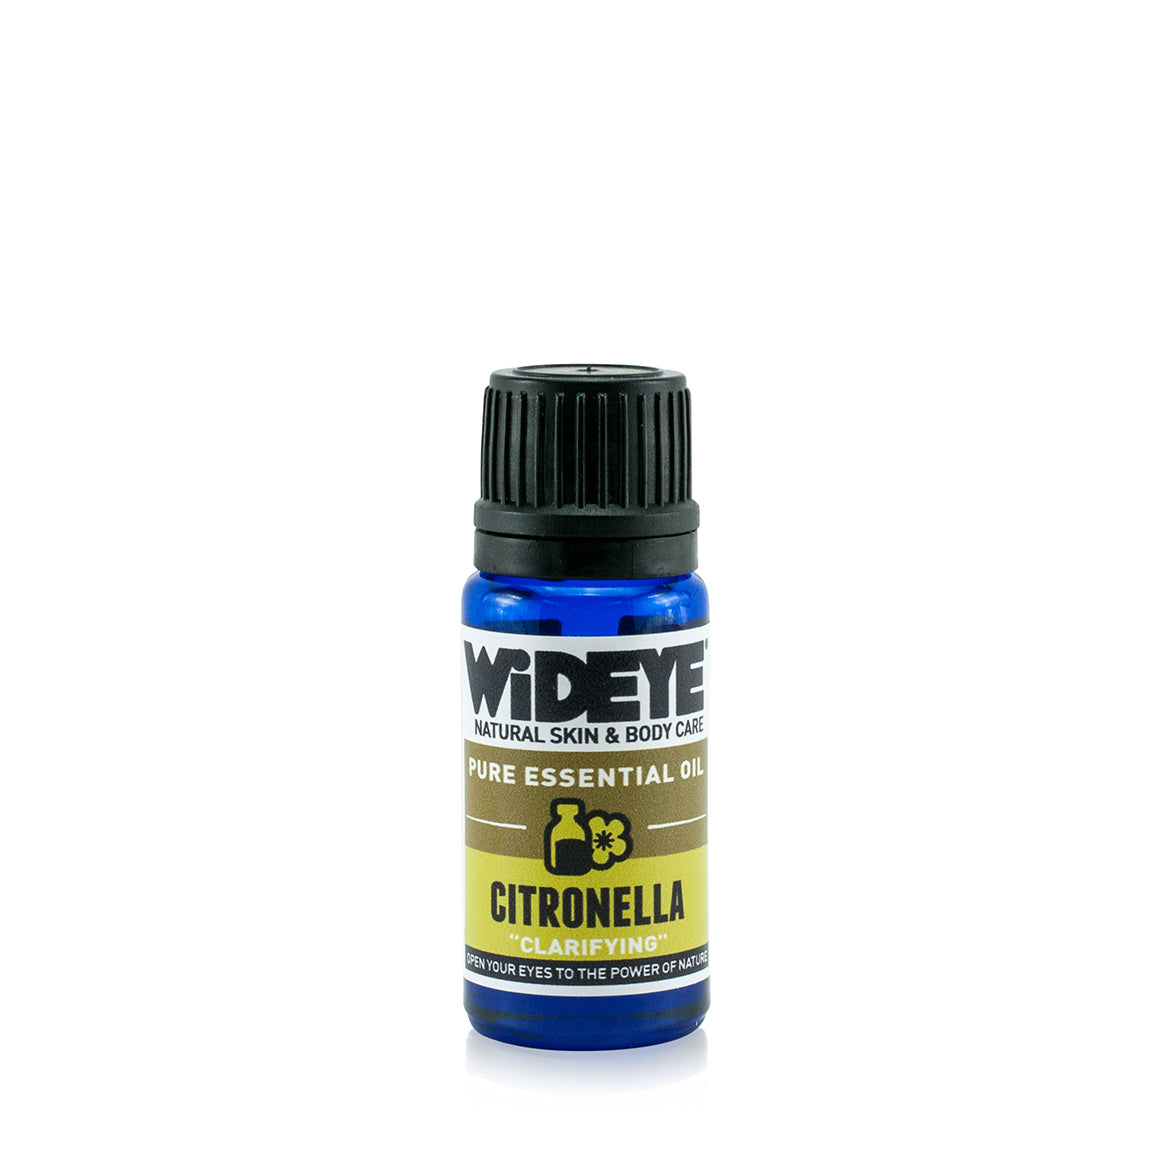 Natural aromatherapy Citronella essential oil in glass bottle by WiDEYE